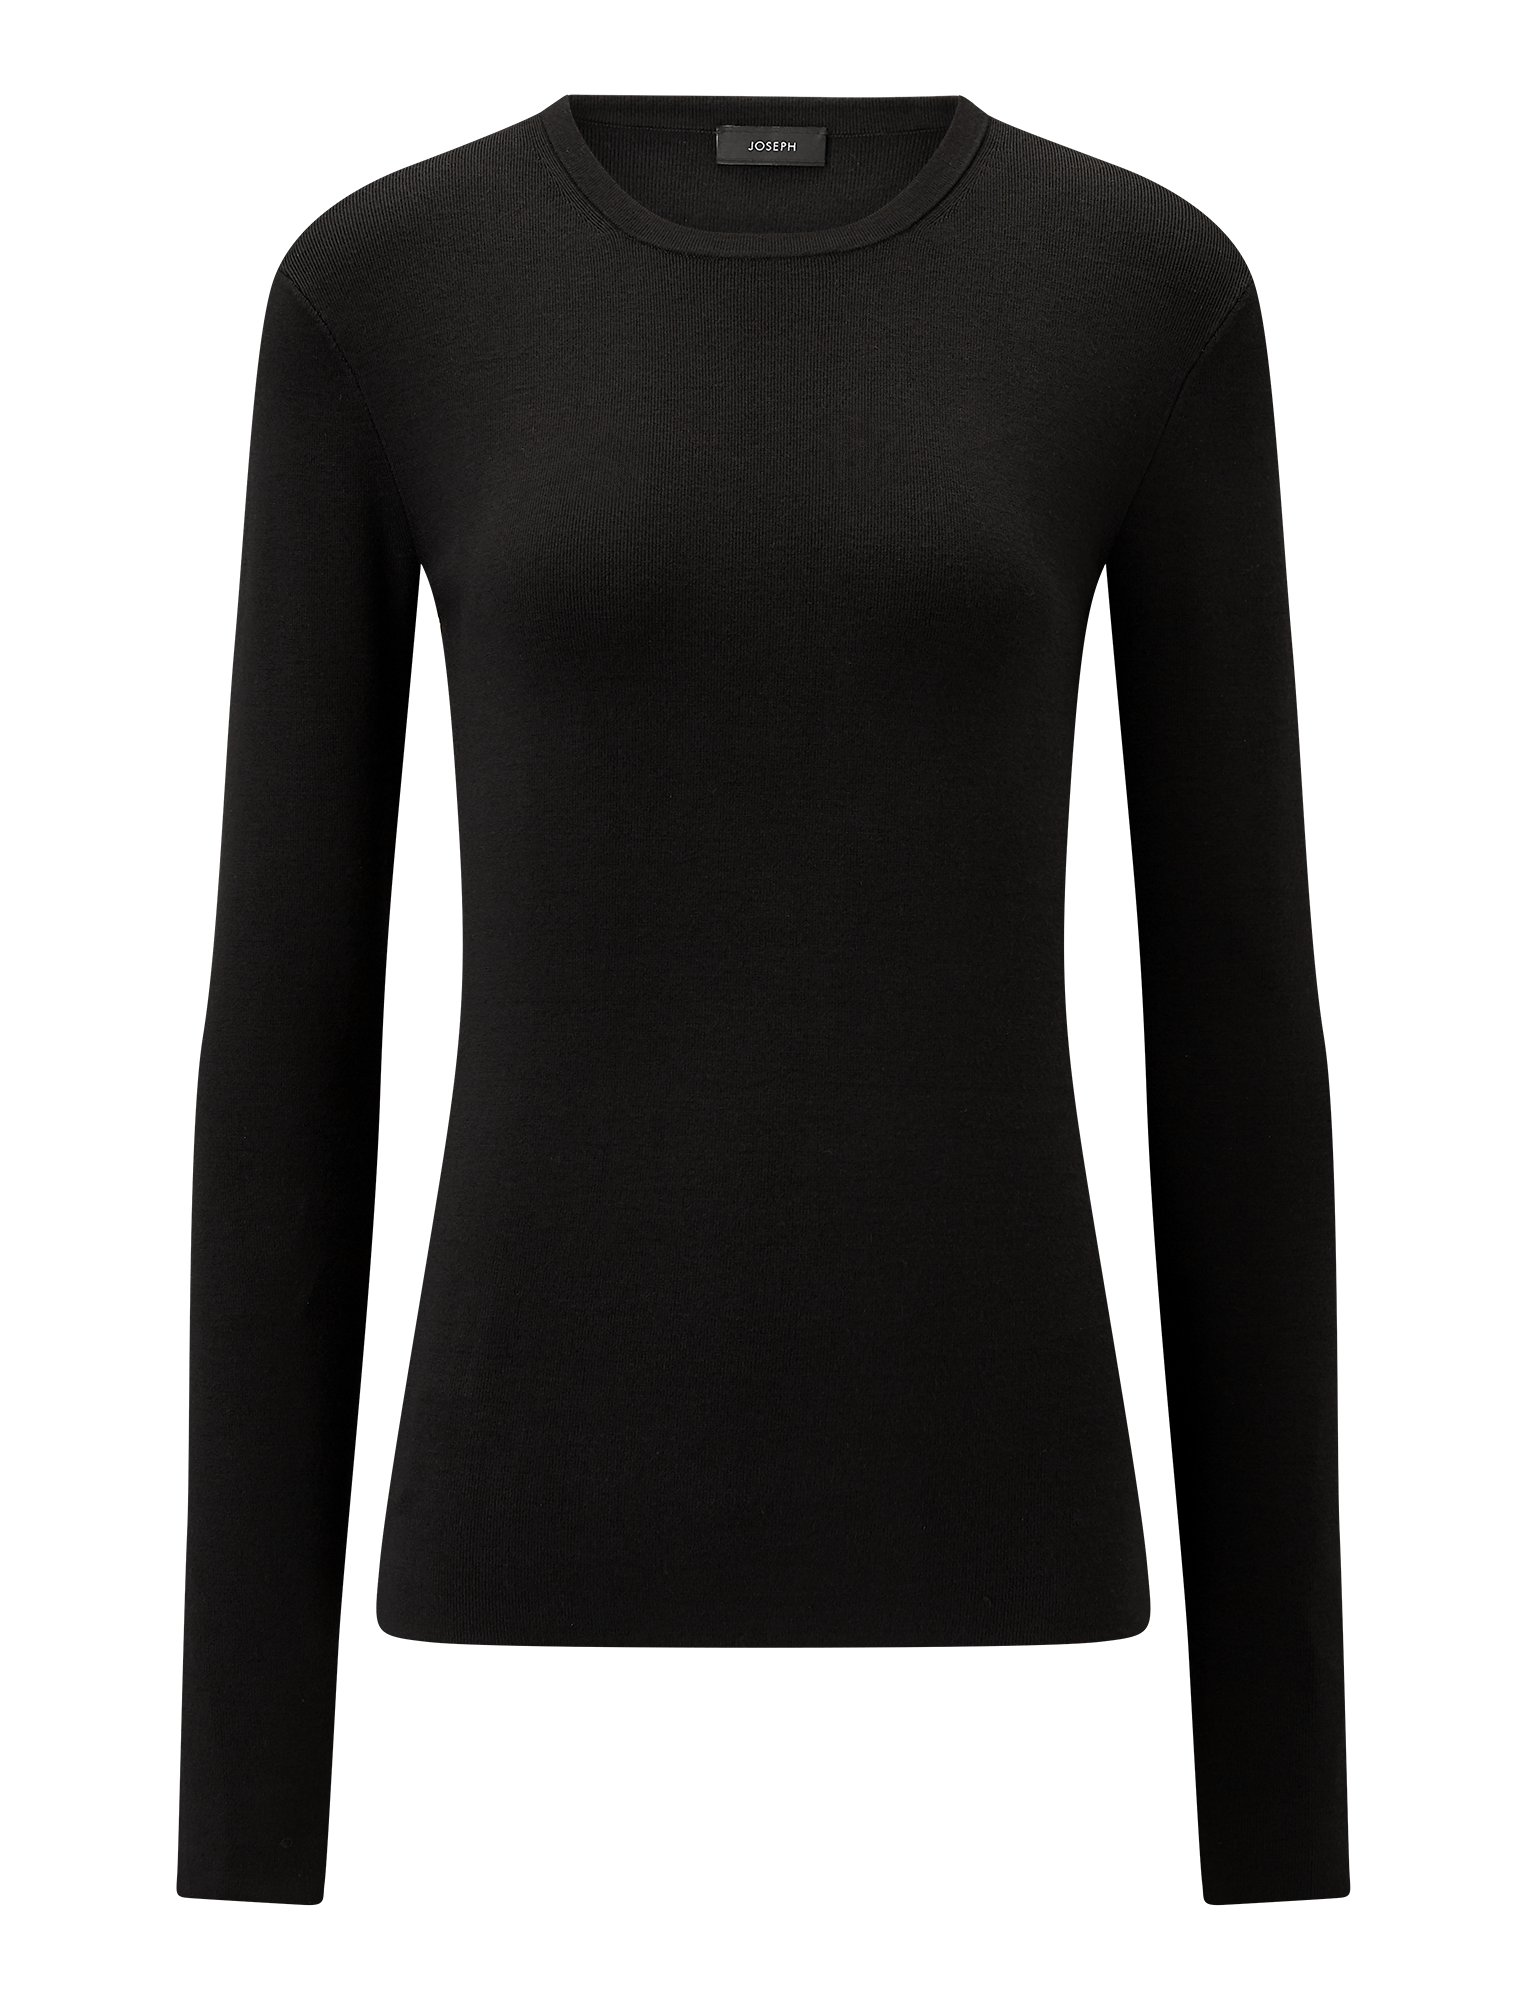 Joseph, Silk Stretch Knit, in BLACK